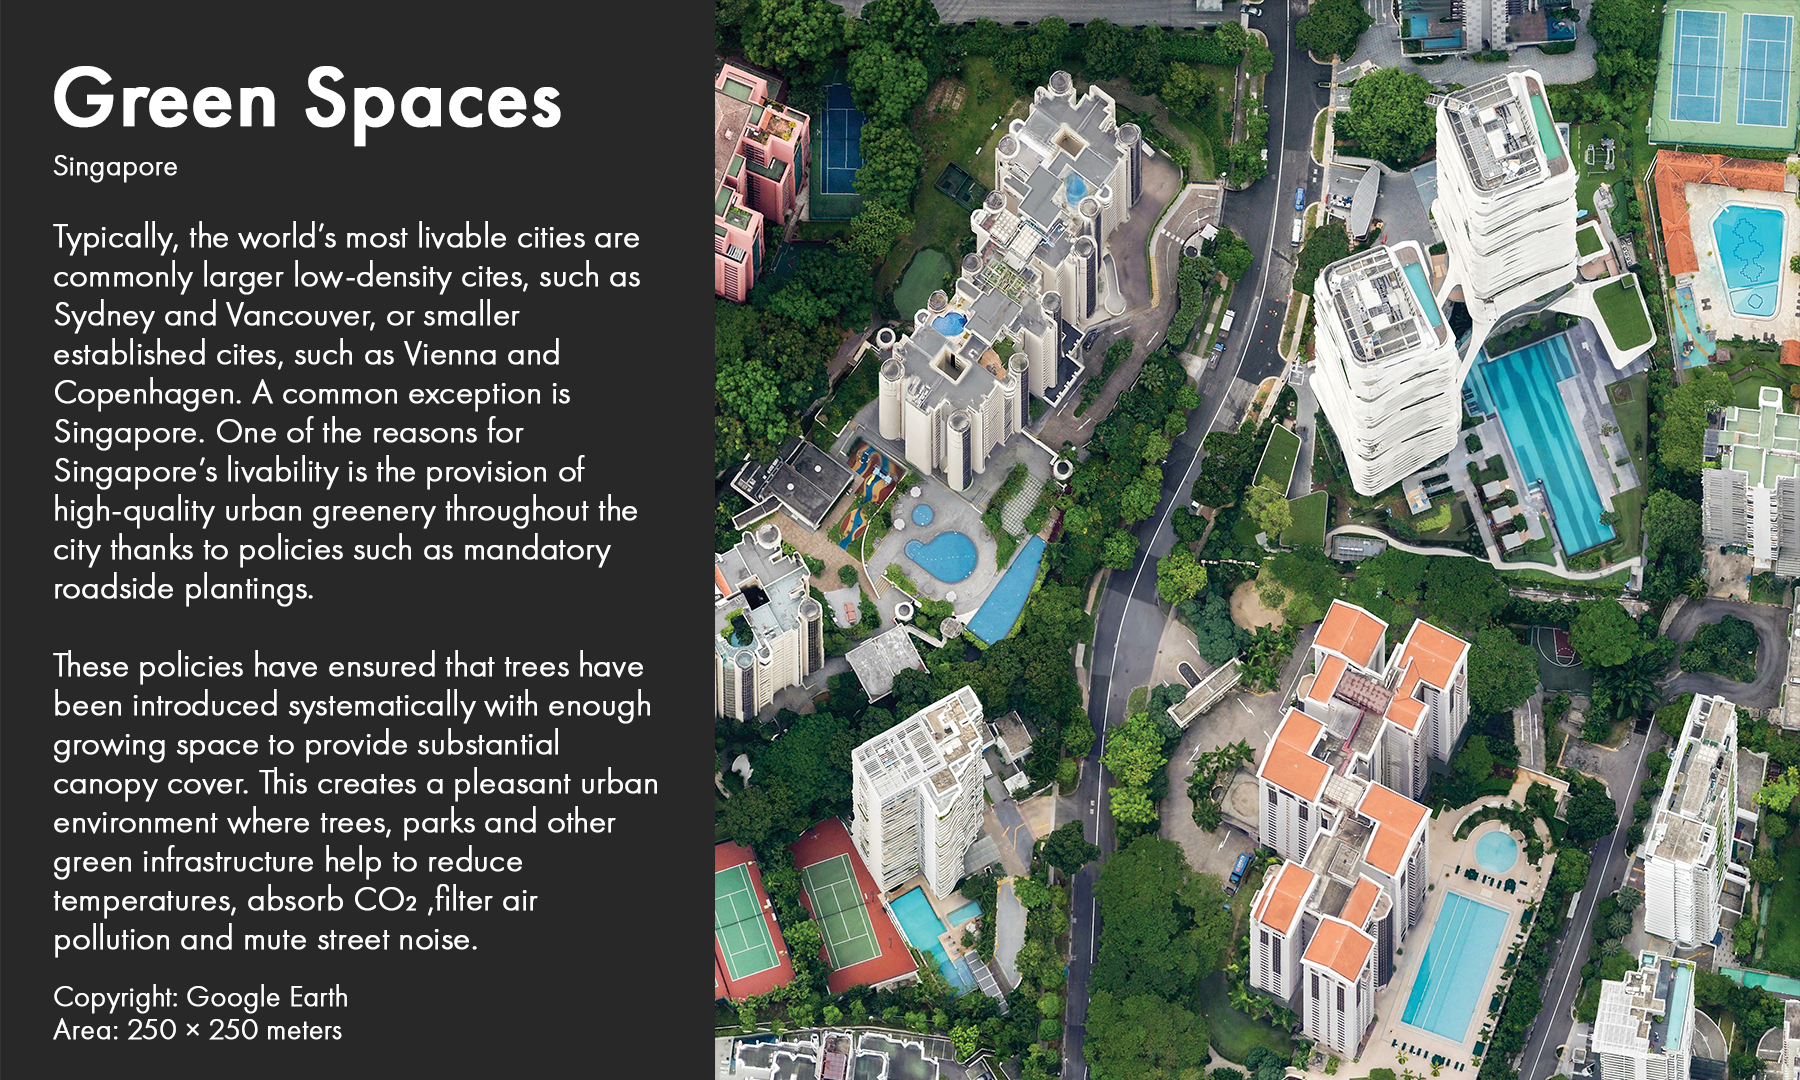 Green Spaces, Singapore